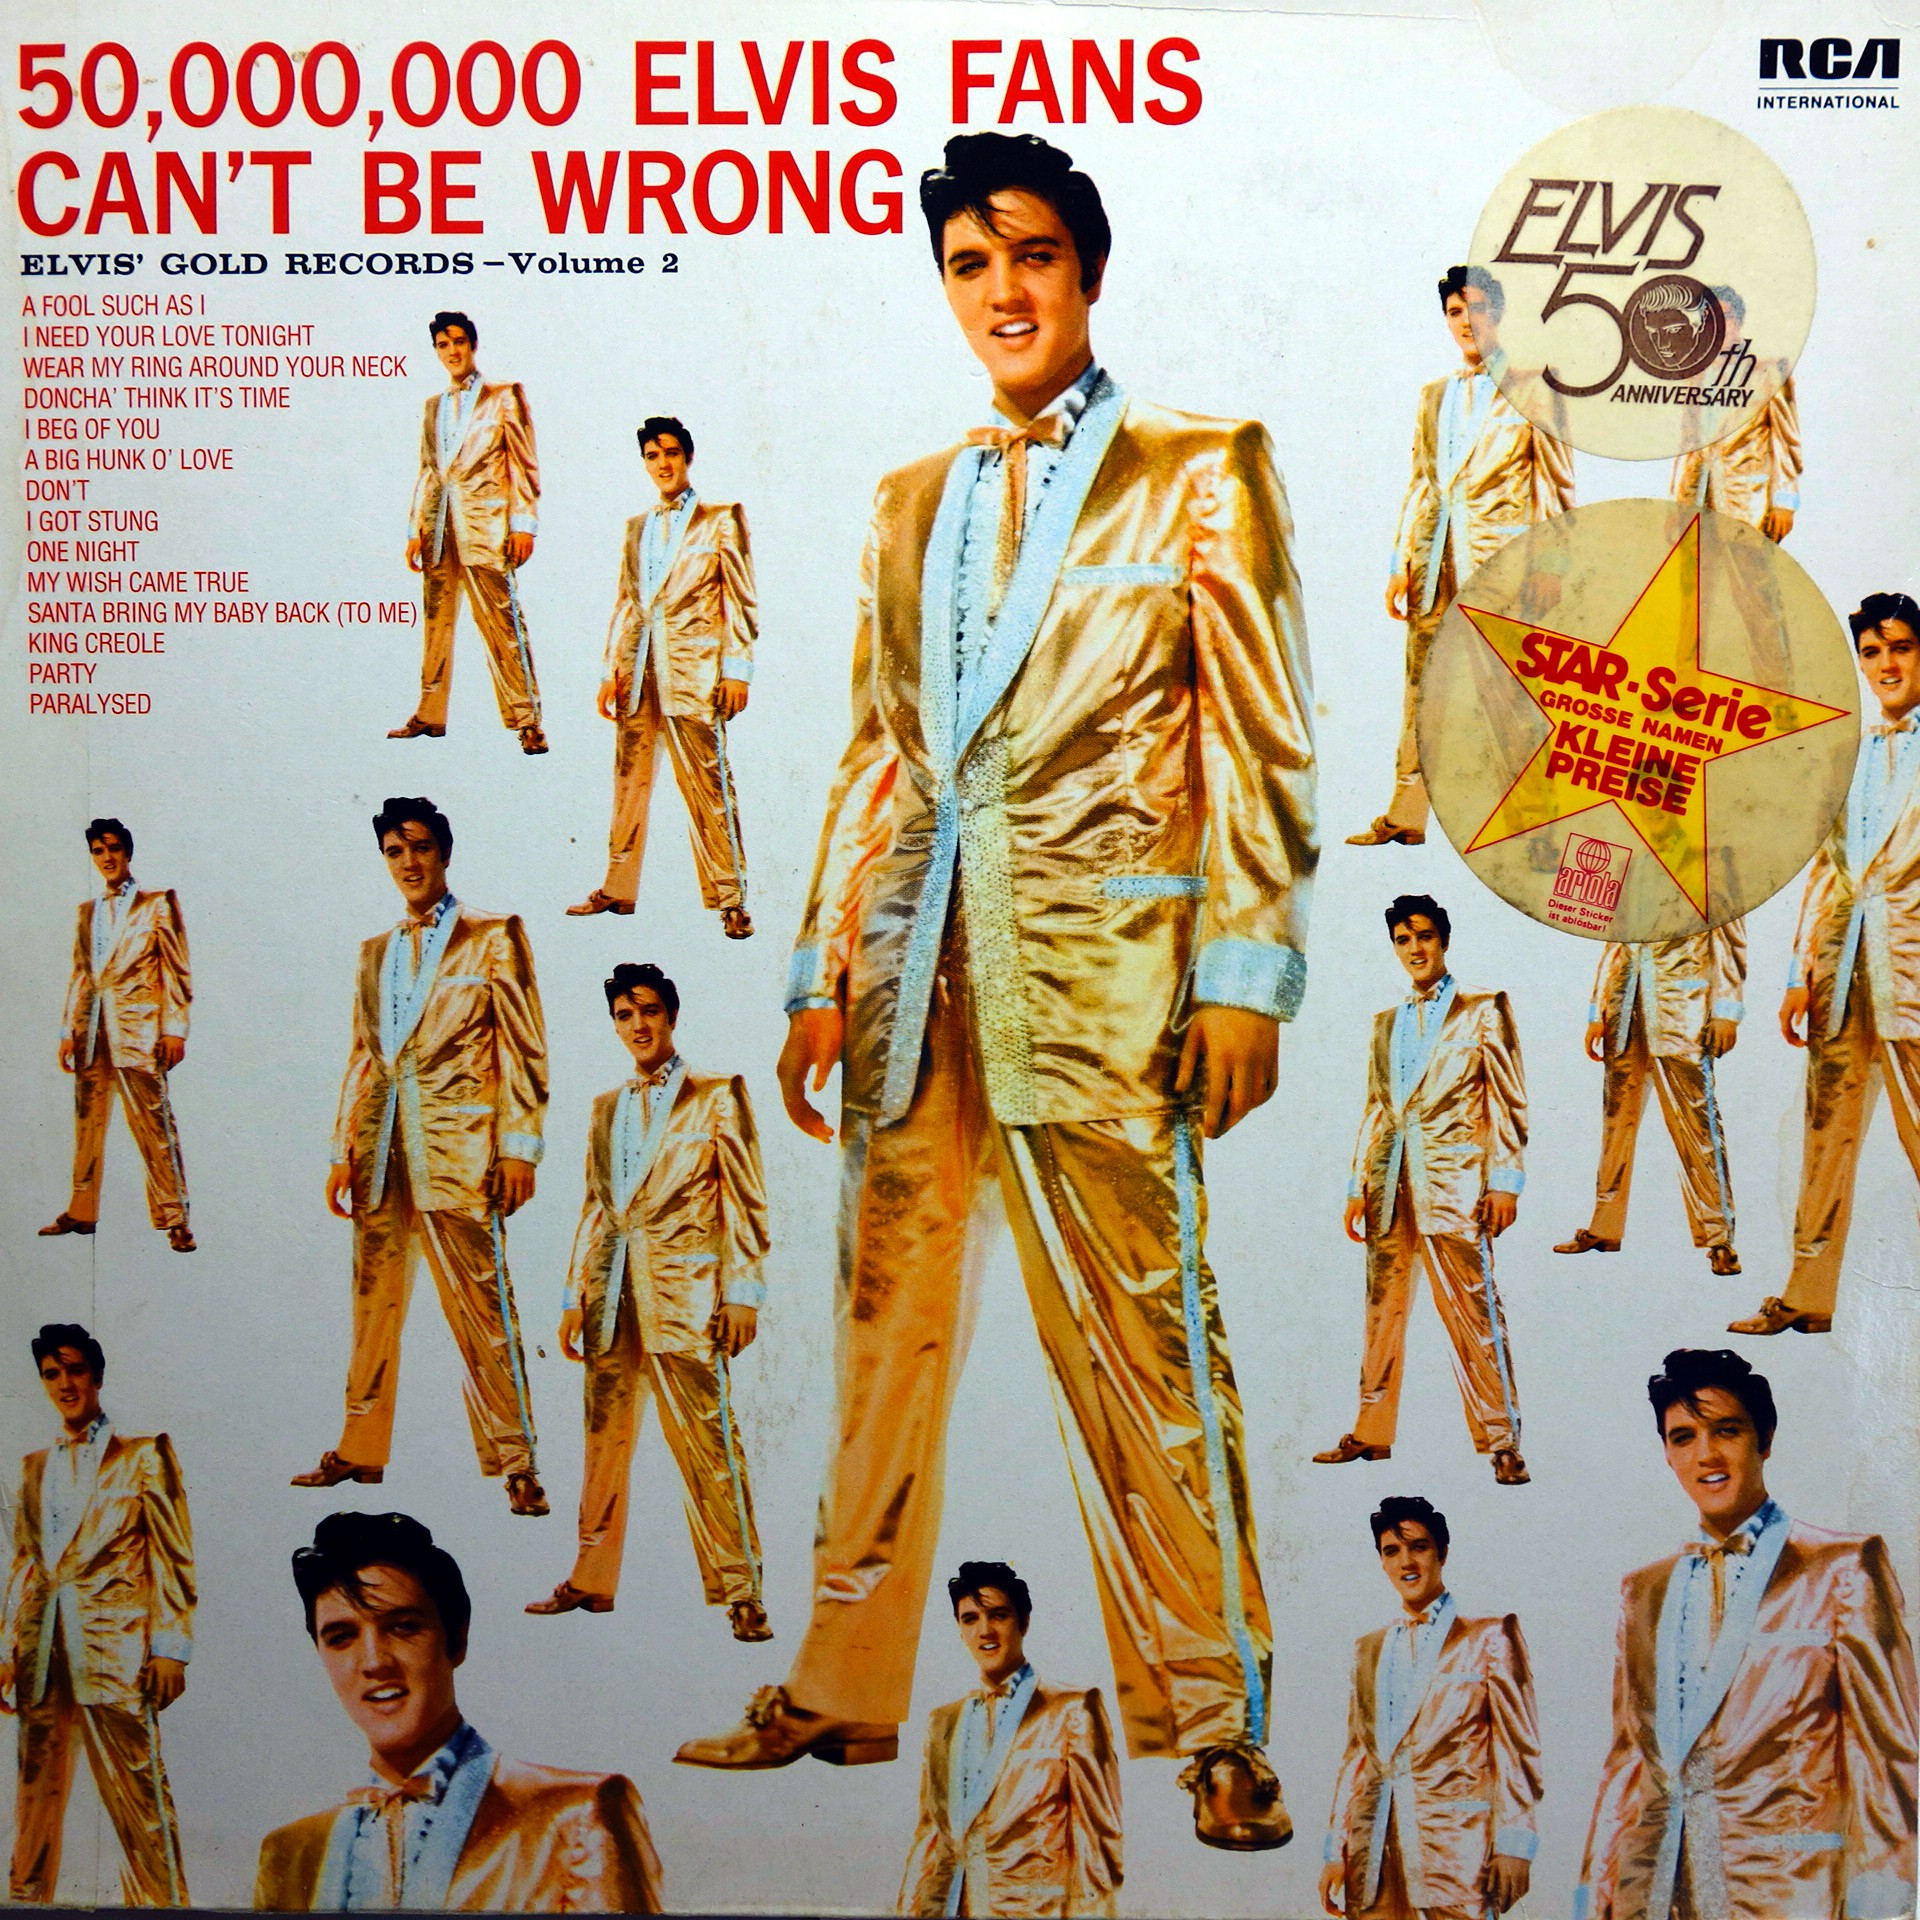 LP Elvis Presley ‎– 50,000,000 Elvis Fans Can't Be Wrong, Vol. 2